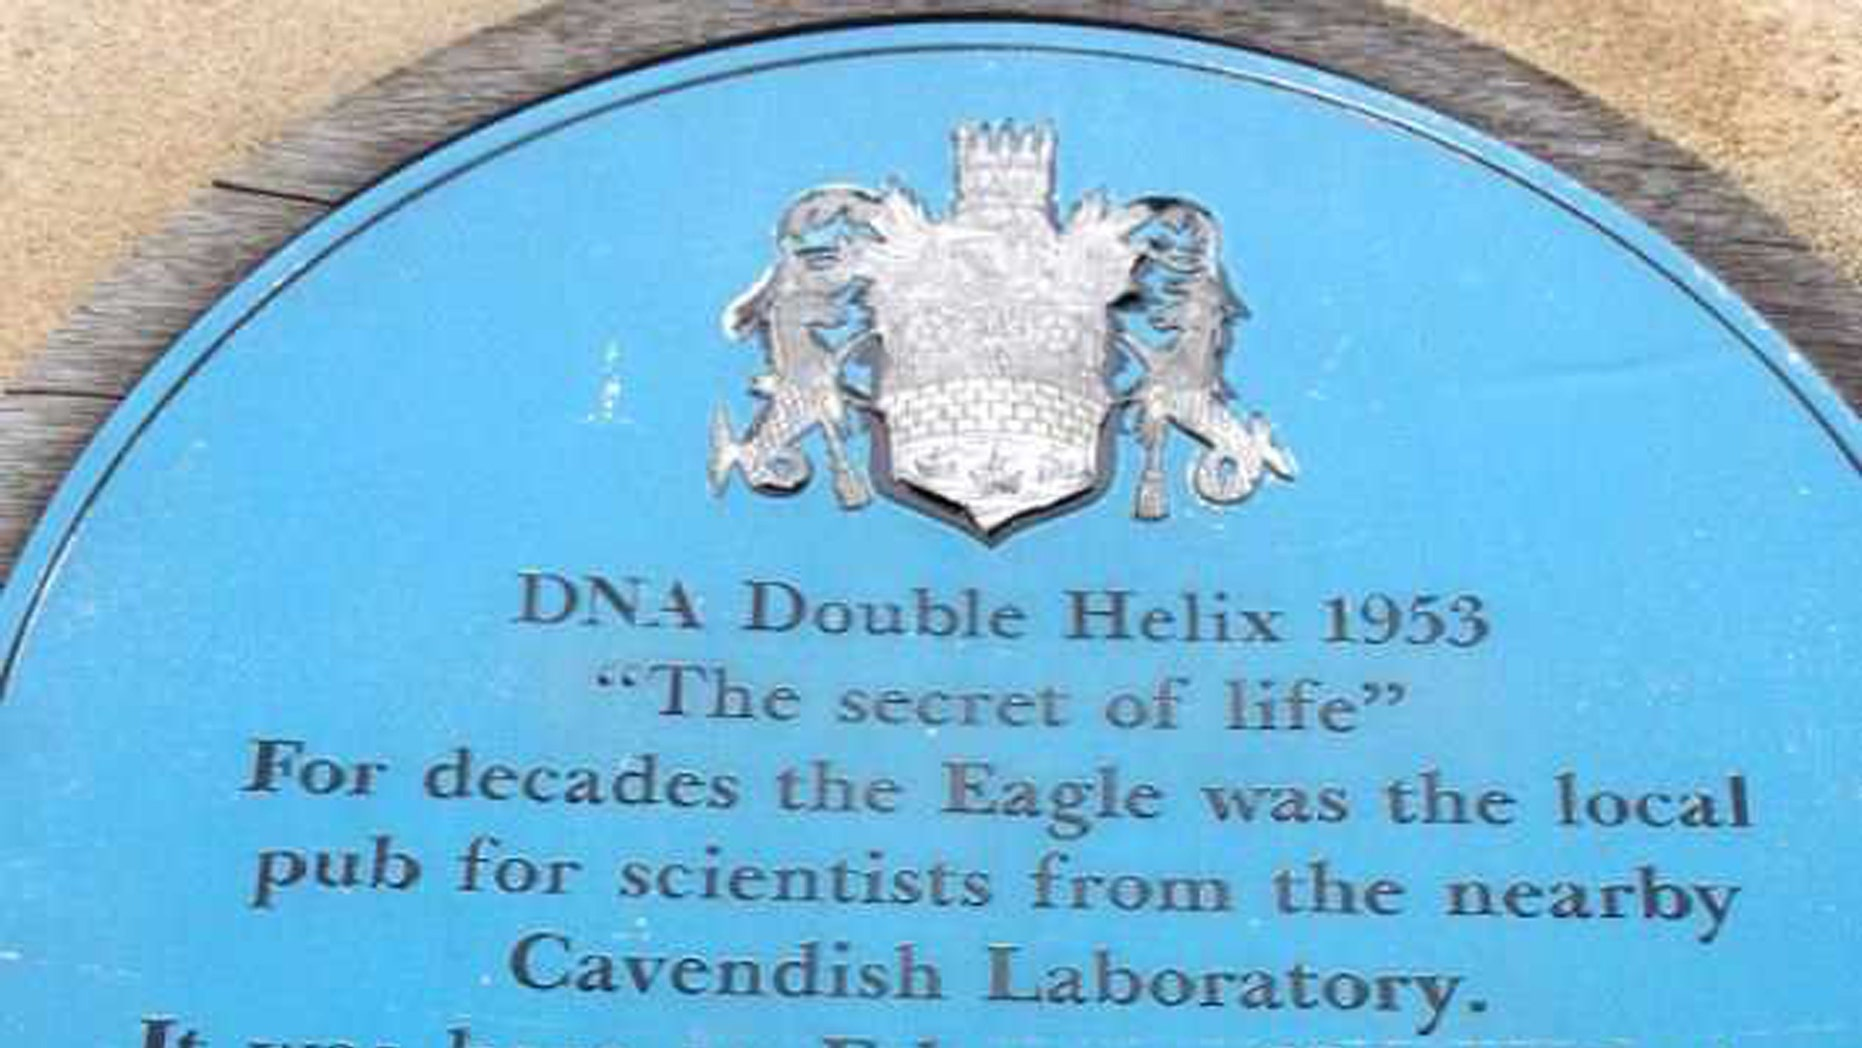 A picture of the vandalized Watson and Crick plaque outside The Eagle pub in Cambridge, England. (Credit: SWNS)